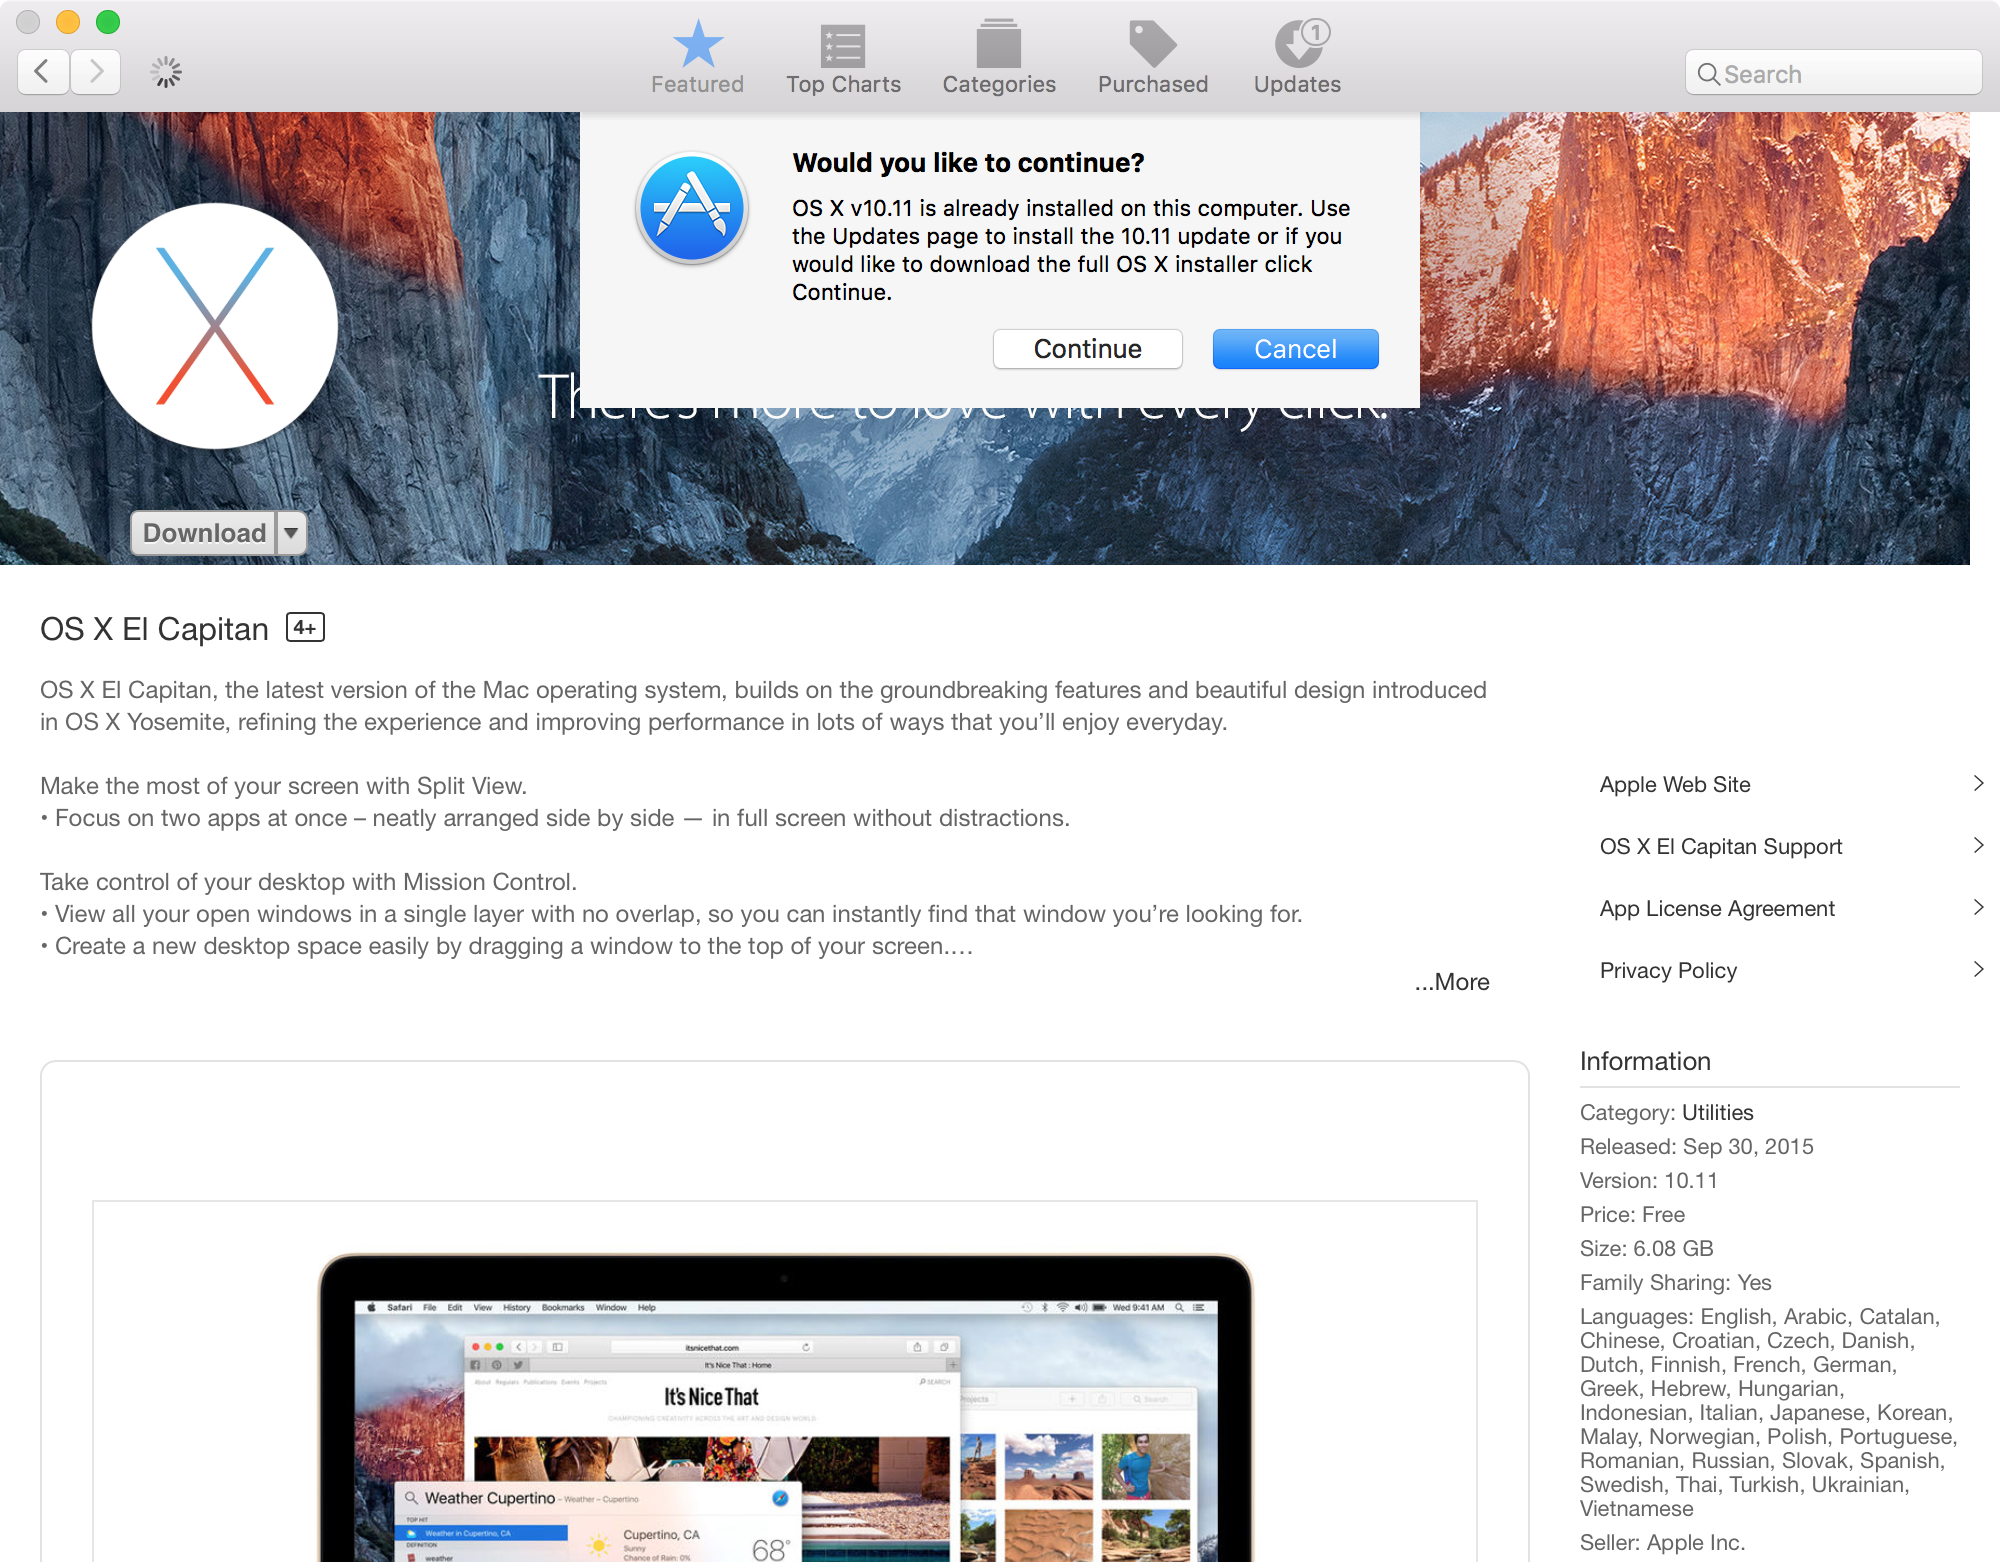 OS X 10.11 already installed update